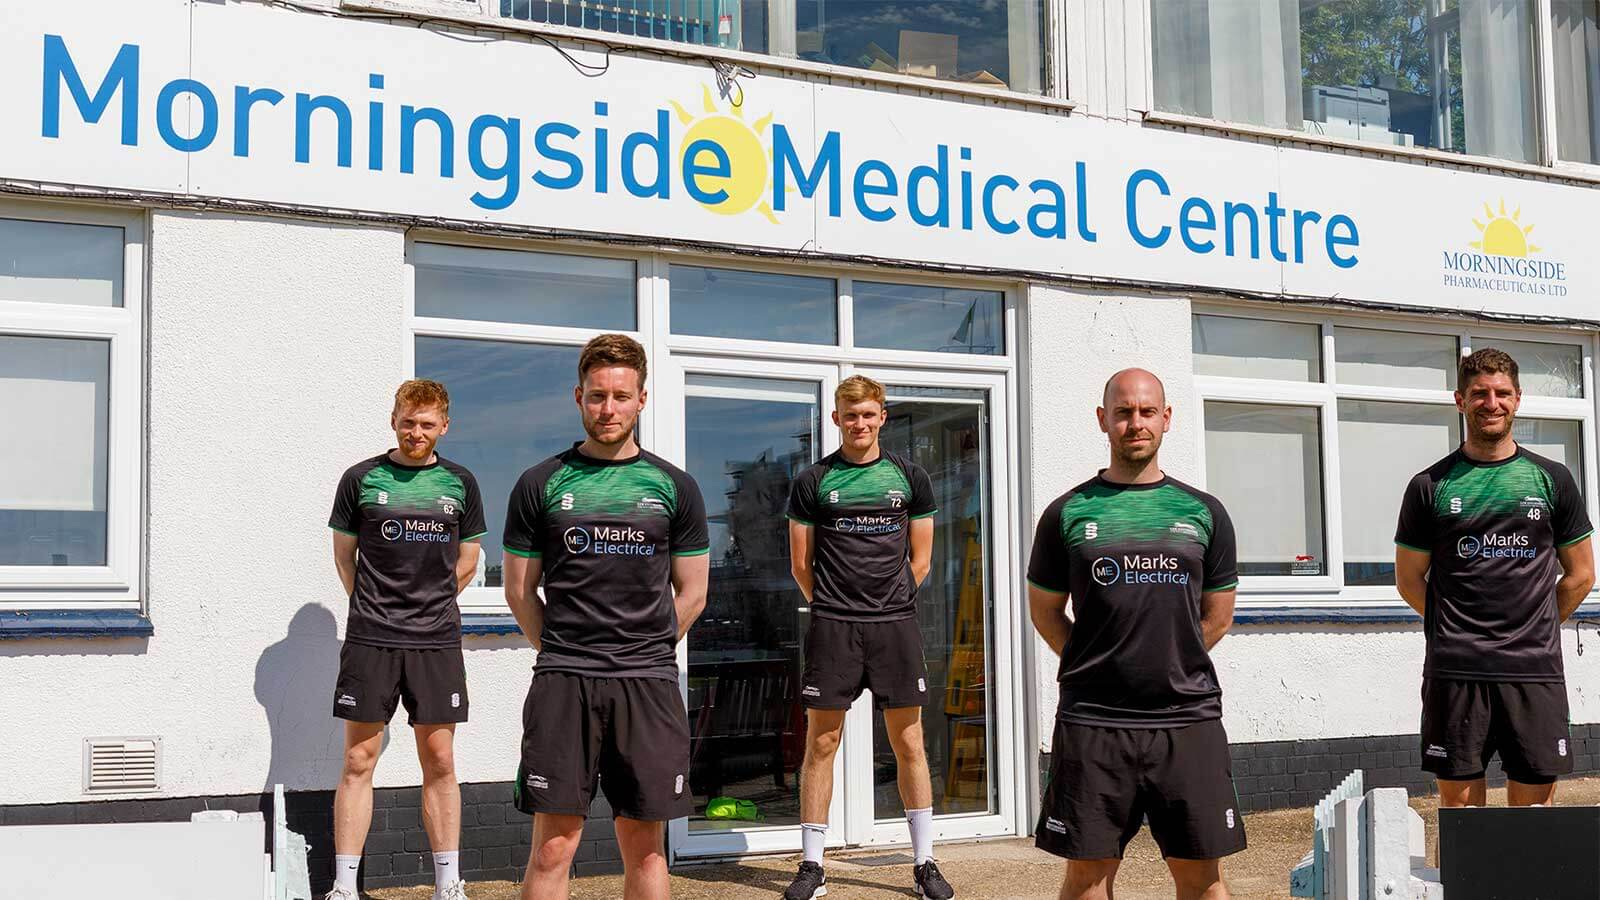 Leicestershire County Cricket Club's Morningside Medical Centre